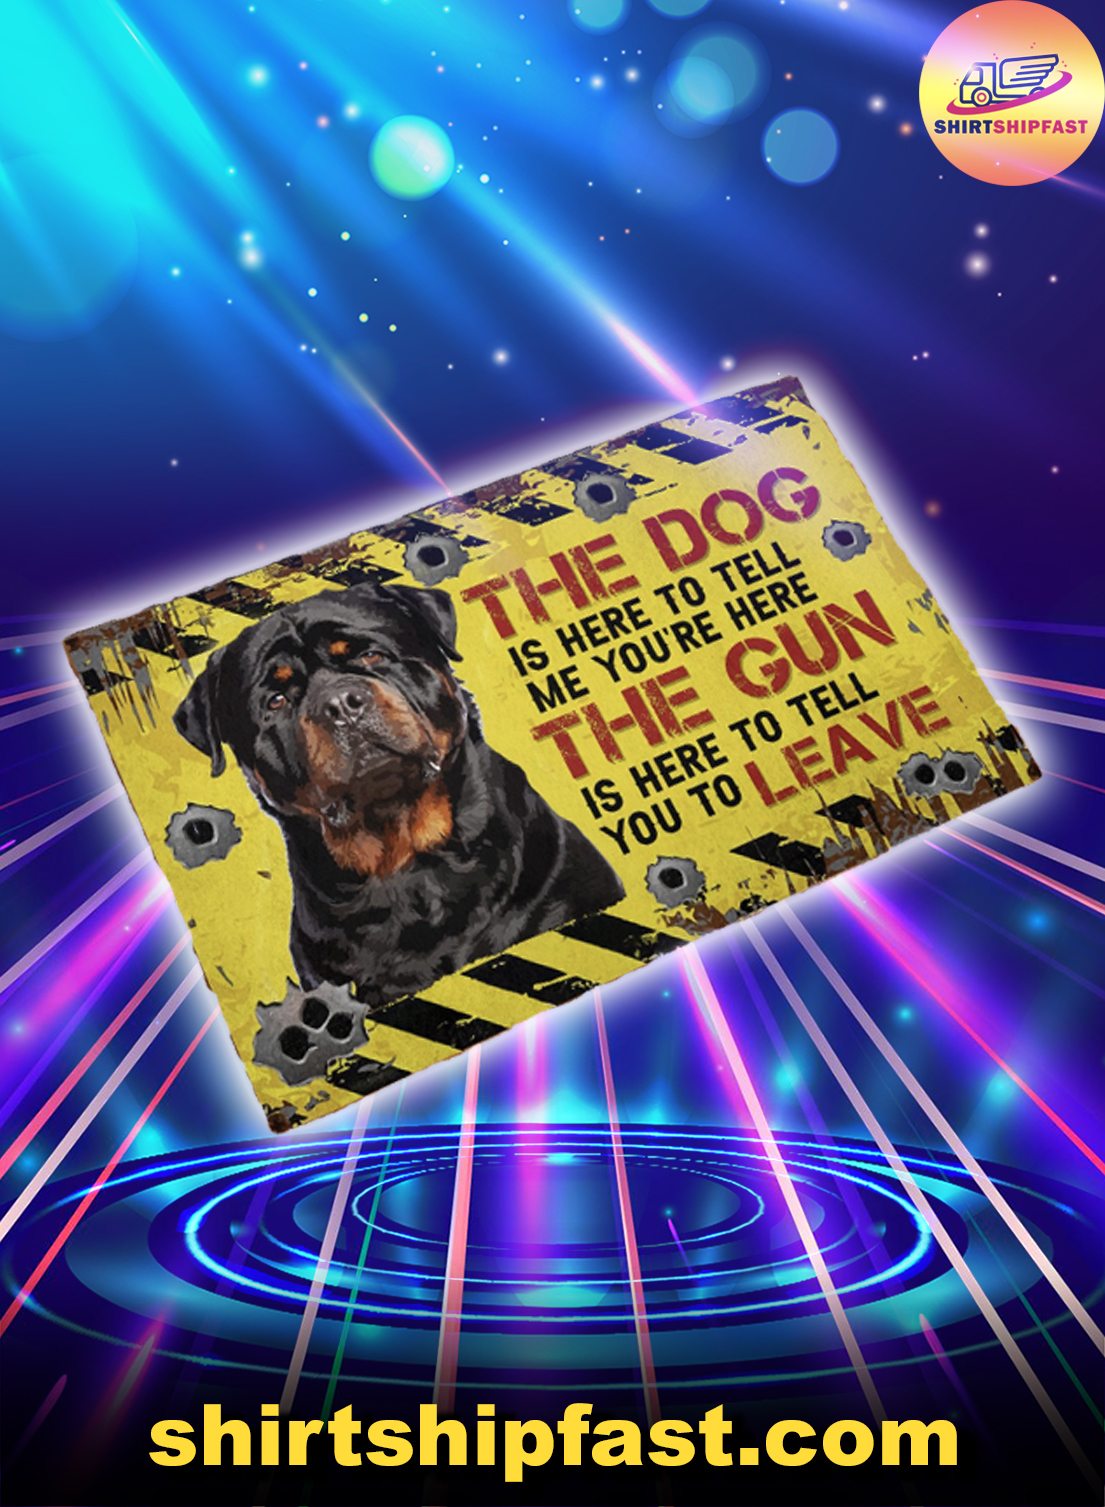 Rottweiler The dog is here to tell me you're here The gun is here to tell you to leave doormat - Picture 1